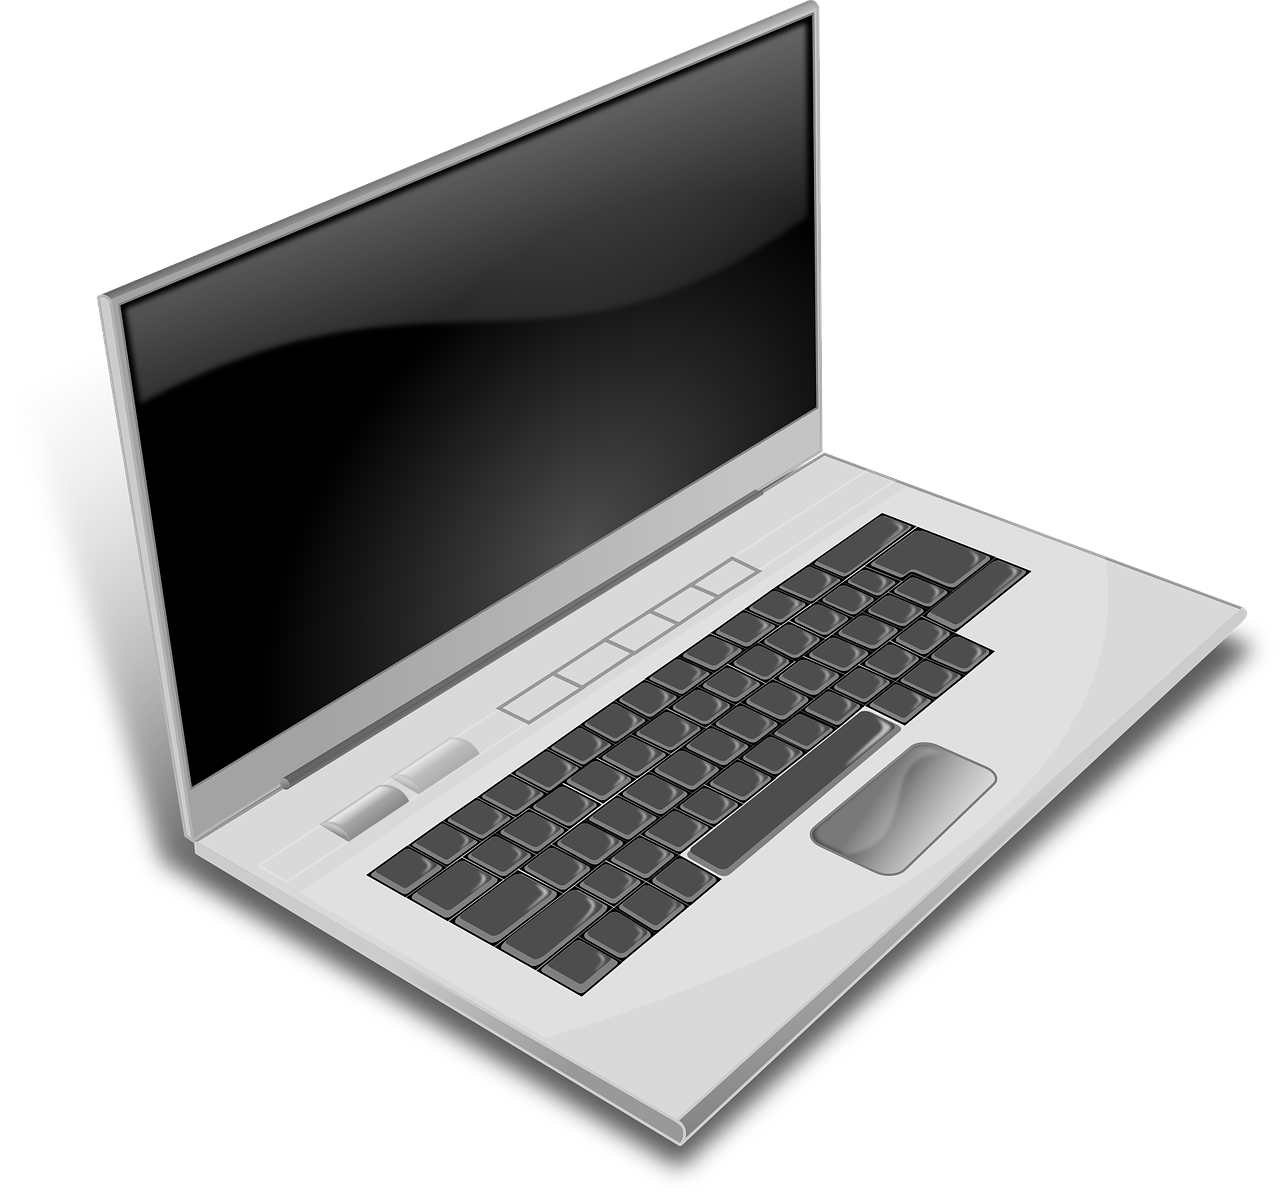 Pc clipart notebook. Laptop computer device png